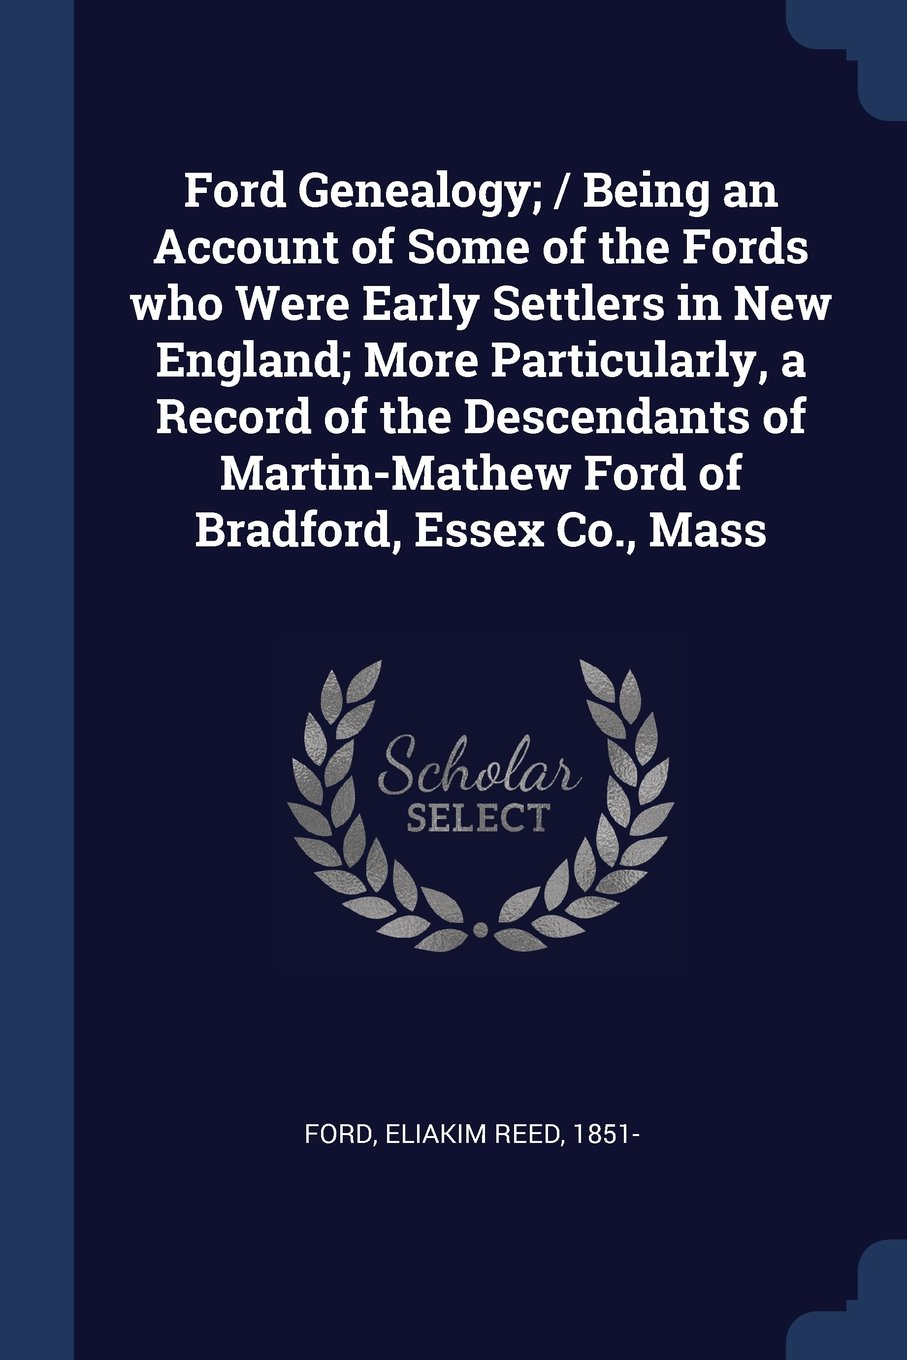 Ford Genealogy; / Being an Account of Some of the Fords who Were Early Settlers in New England; More Particularly, a Record of the Descendants of Martin-Mathew Ford of Bradford, Essex Co., Mass ebook